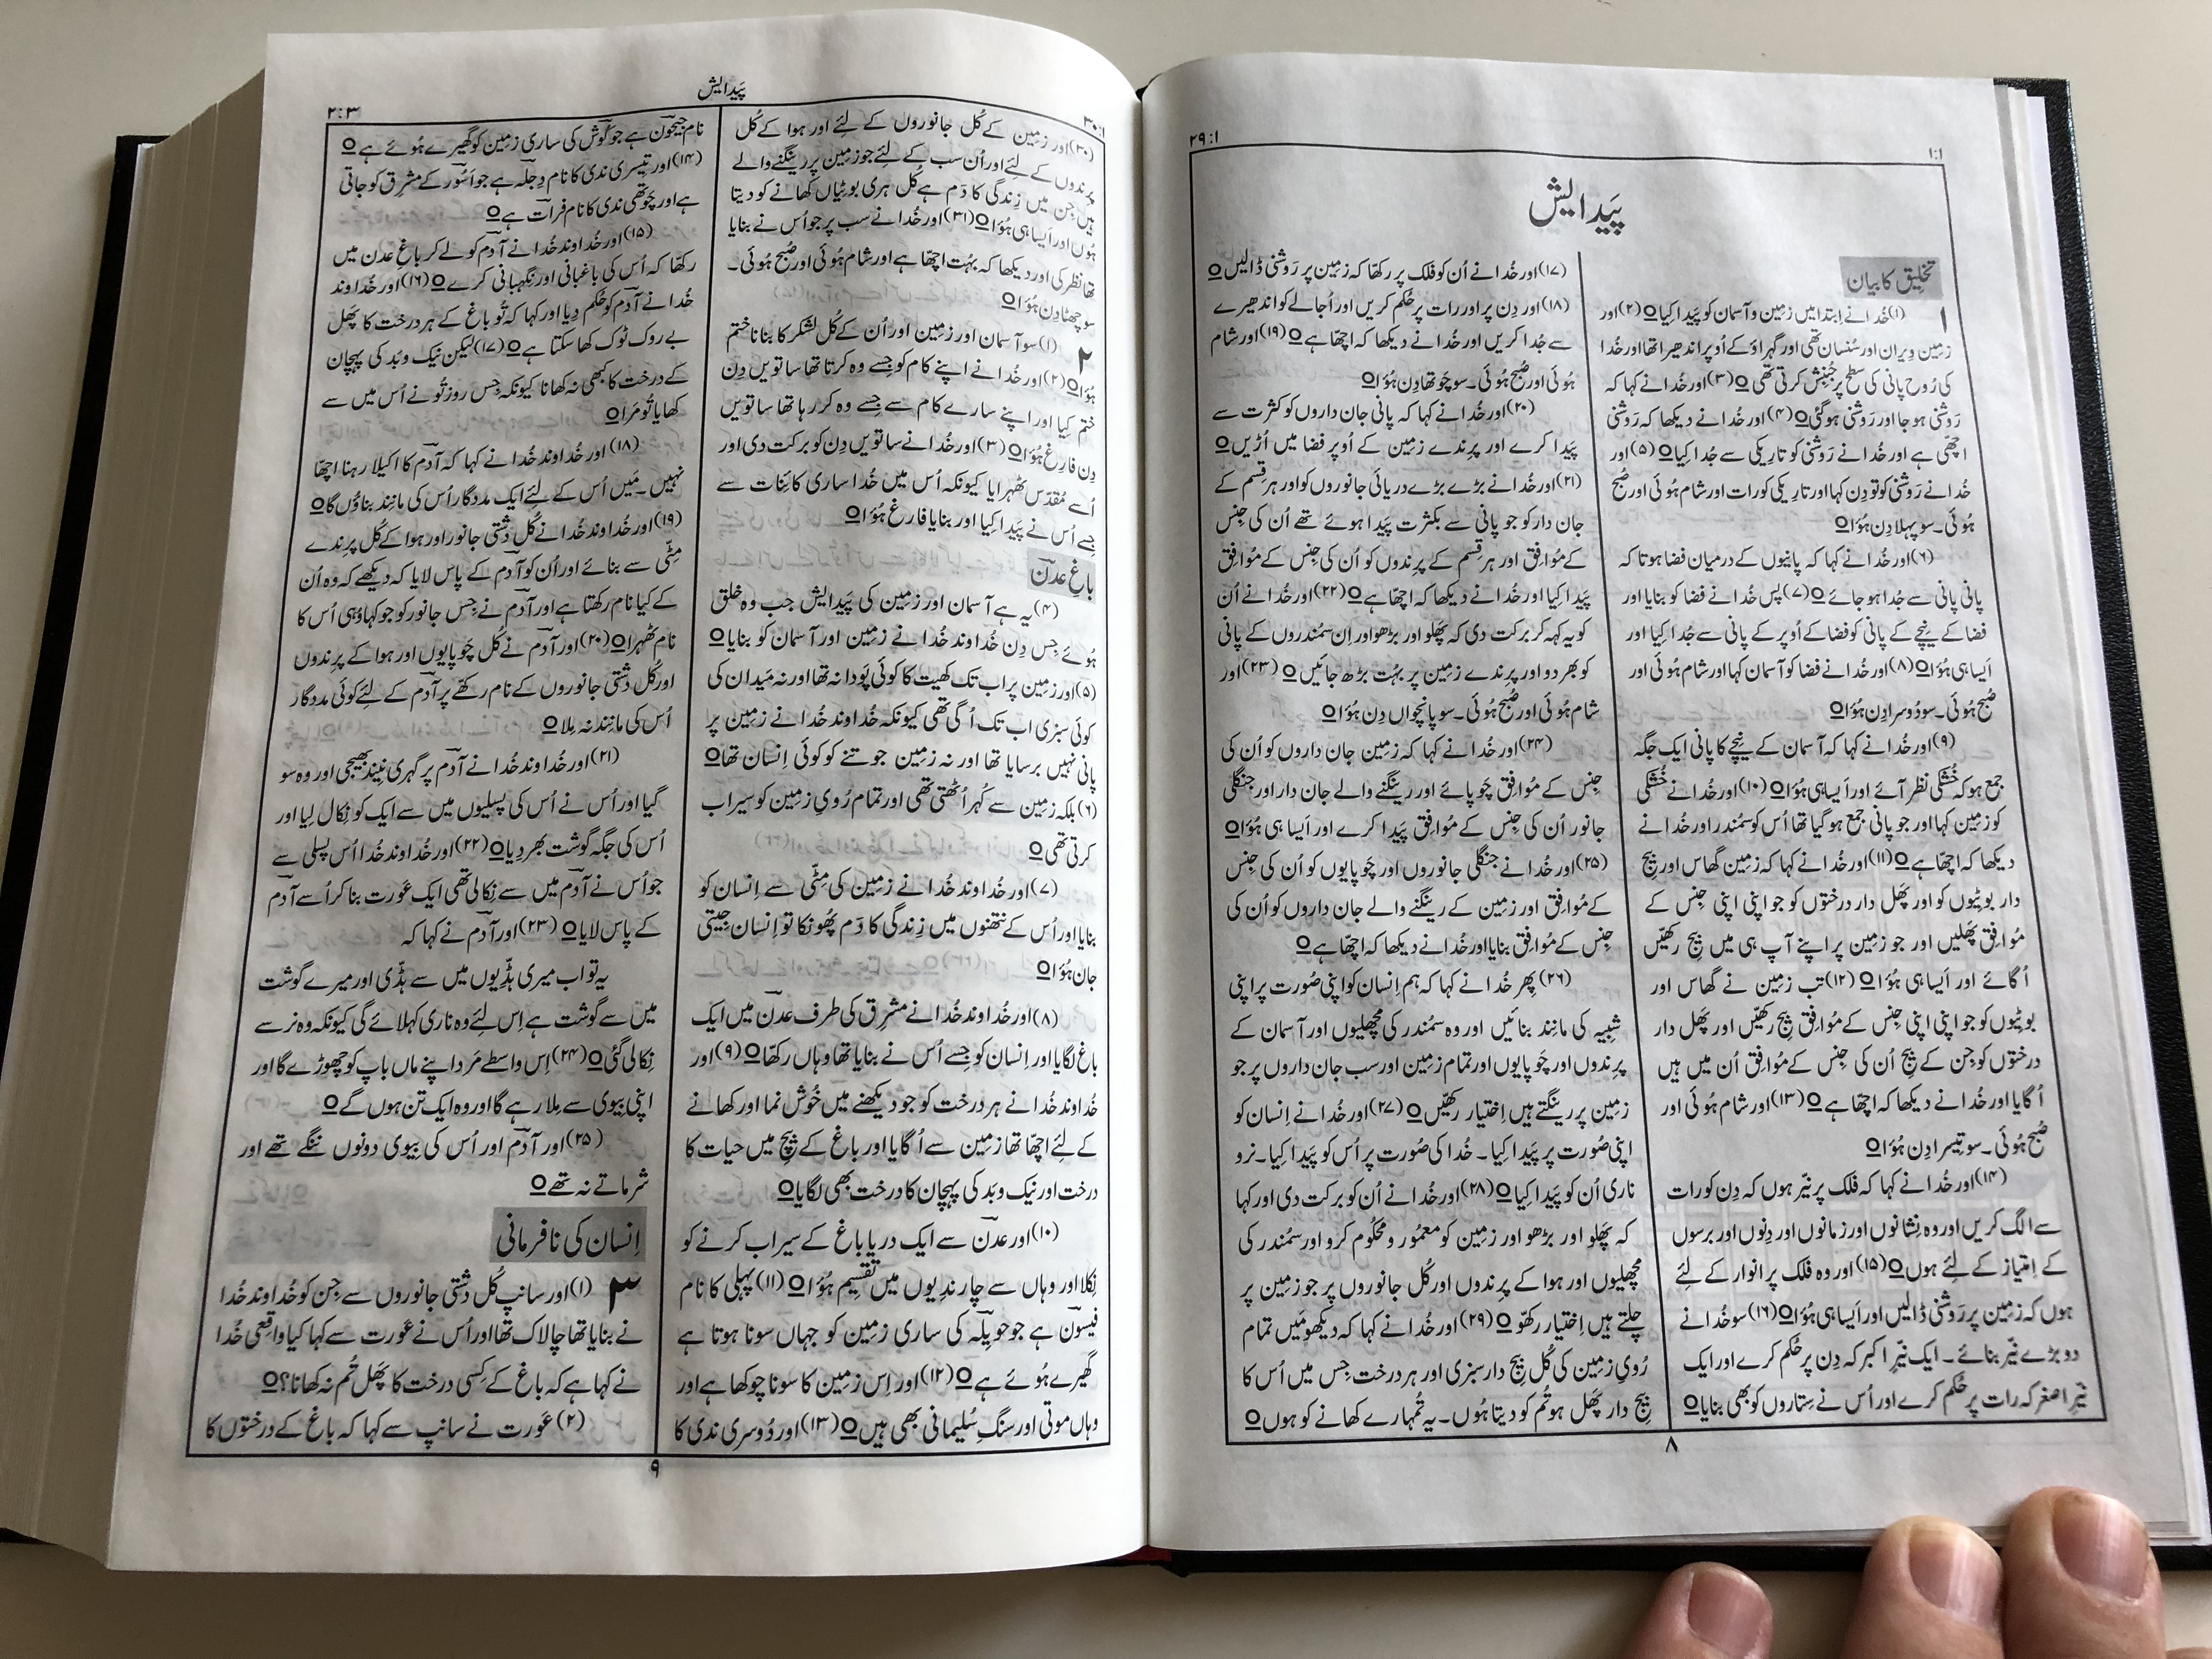 holy-bible-in-urdu-language-revised-version-pakistan-bible-society-2019-hardcover-black-10-.jpg